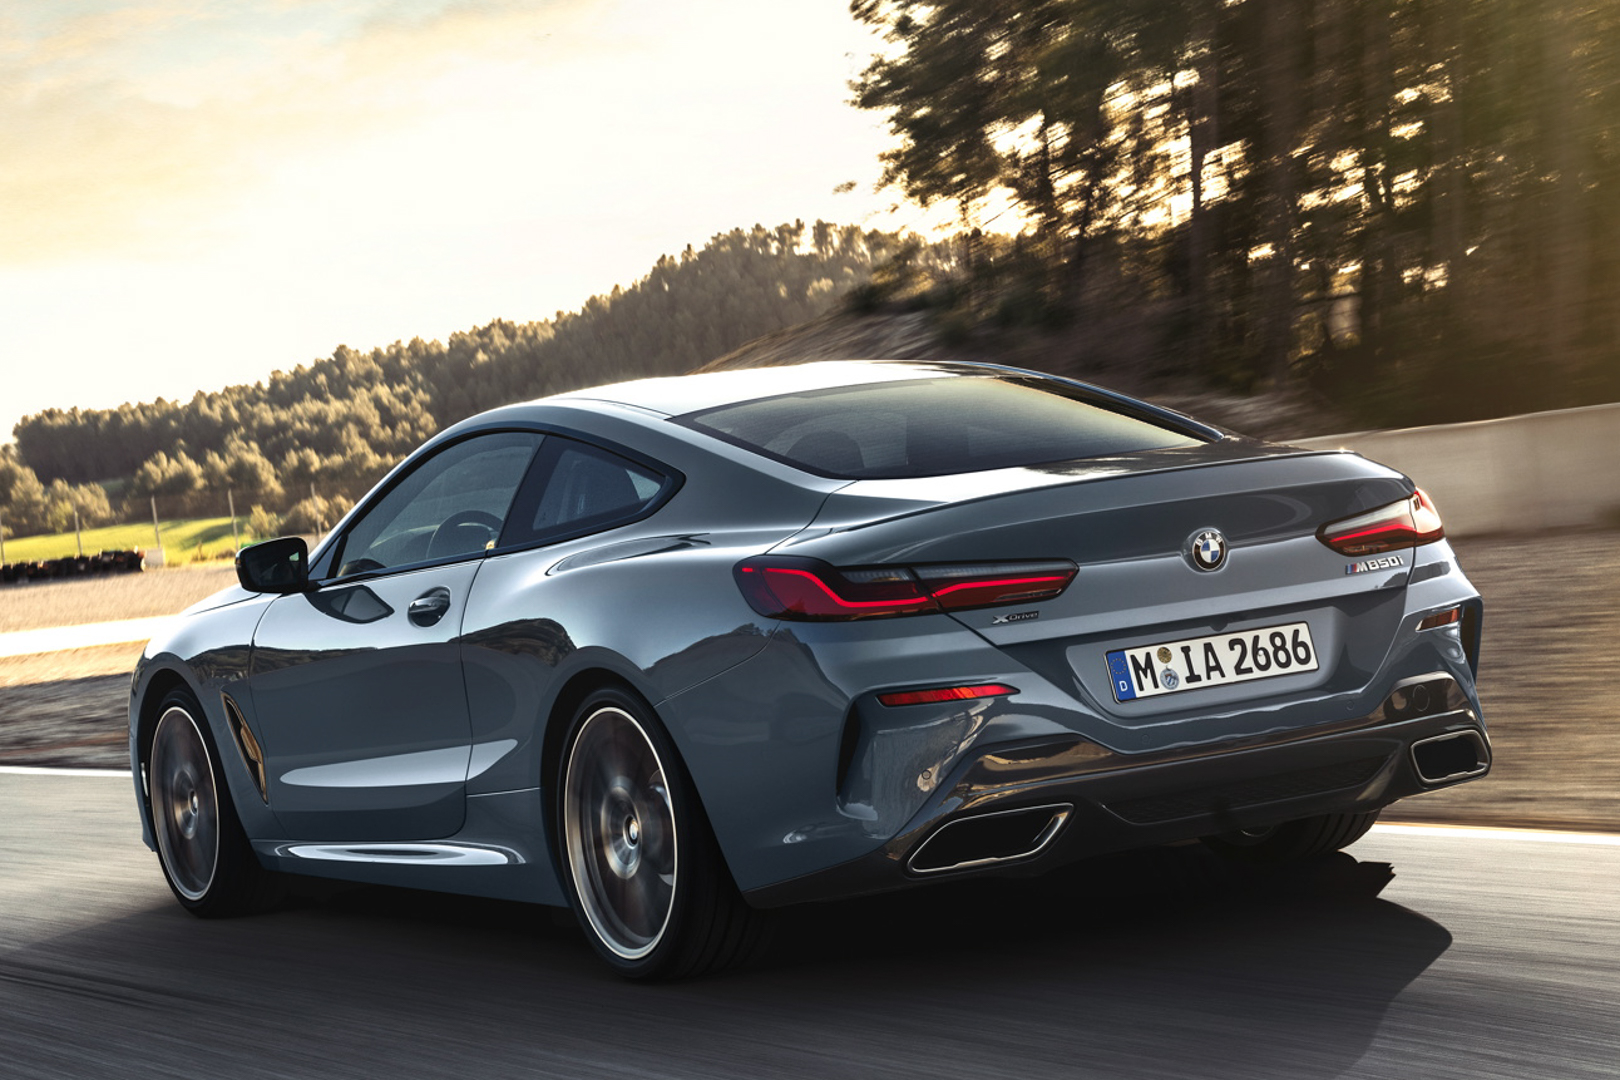 BMW 8 Series Comparison 2 of 5